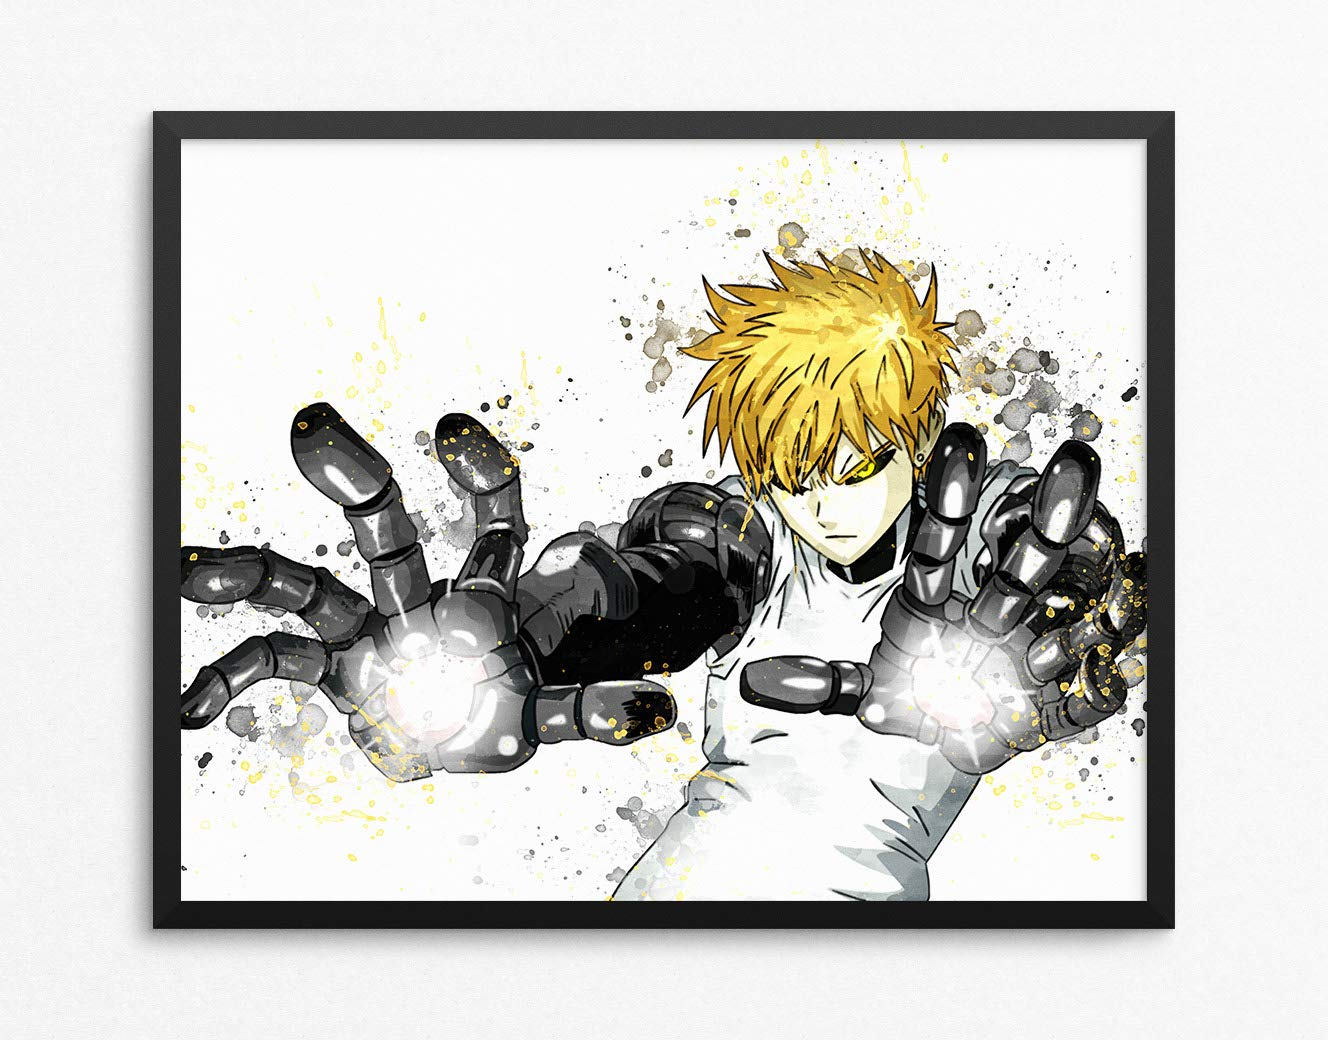 Amazon com one punch man print genos print one punch man poster genos poster anime print anime poster watercolor n 010 8 x 10 inch posters